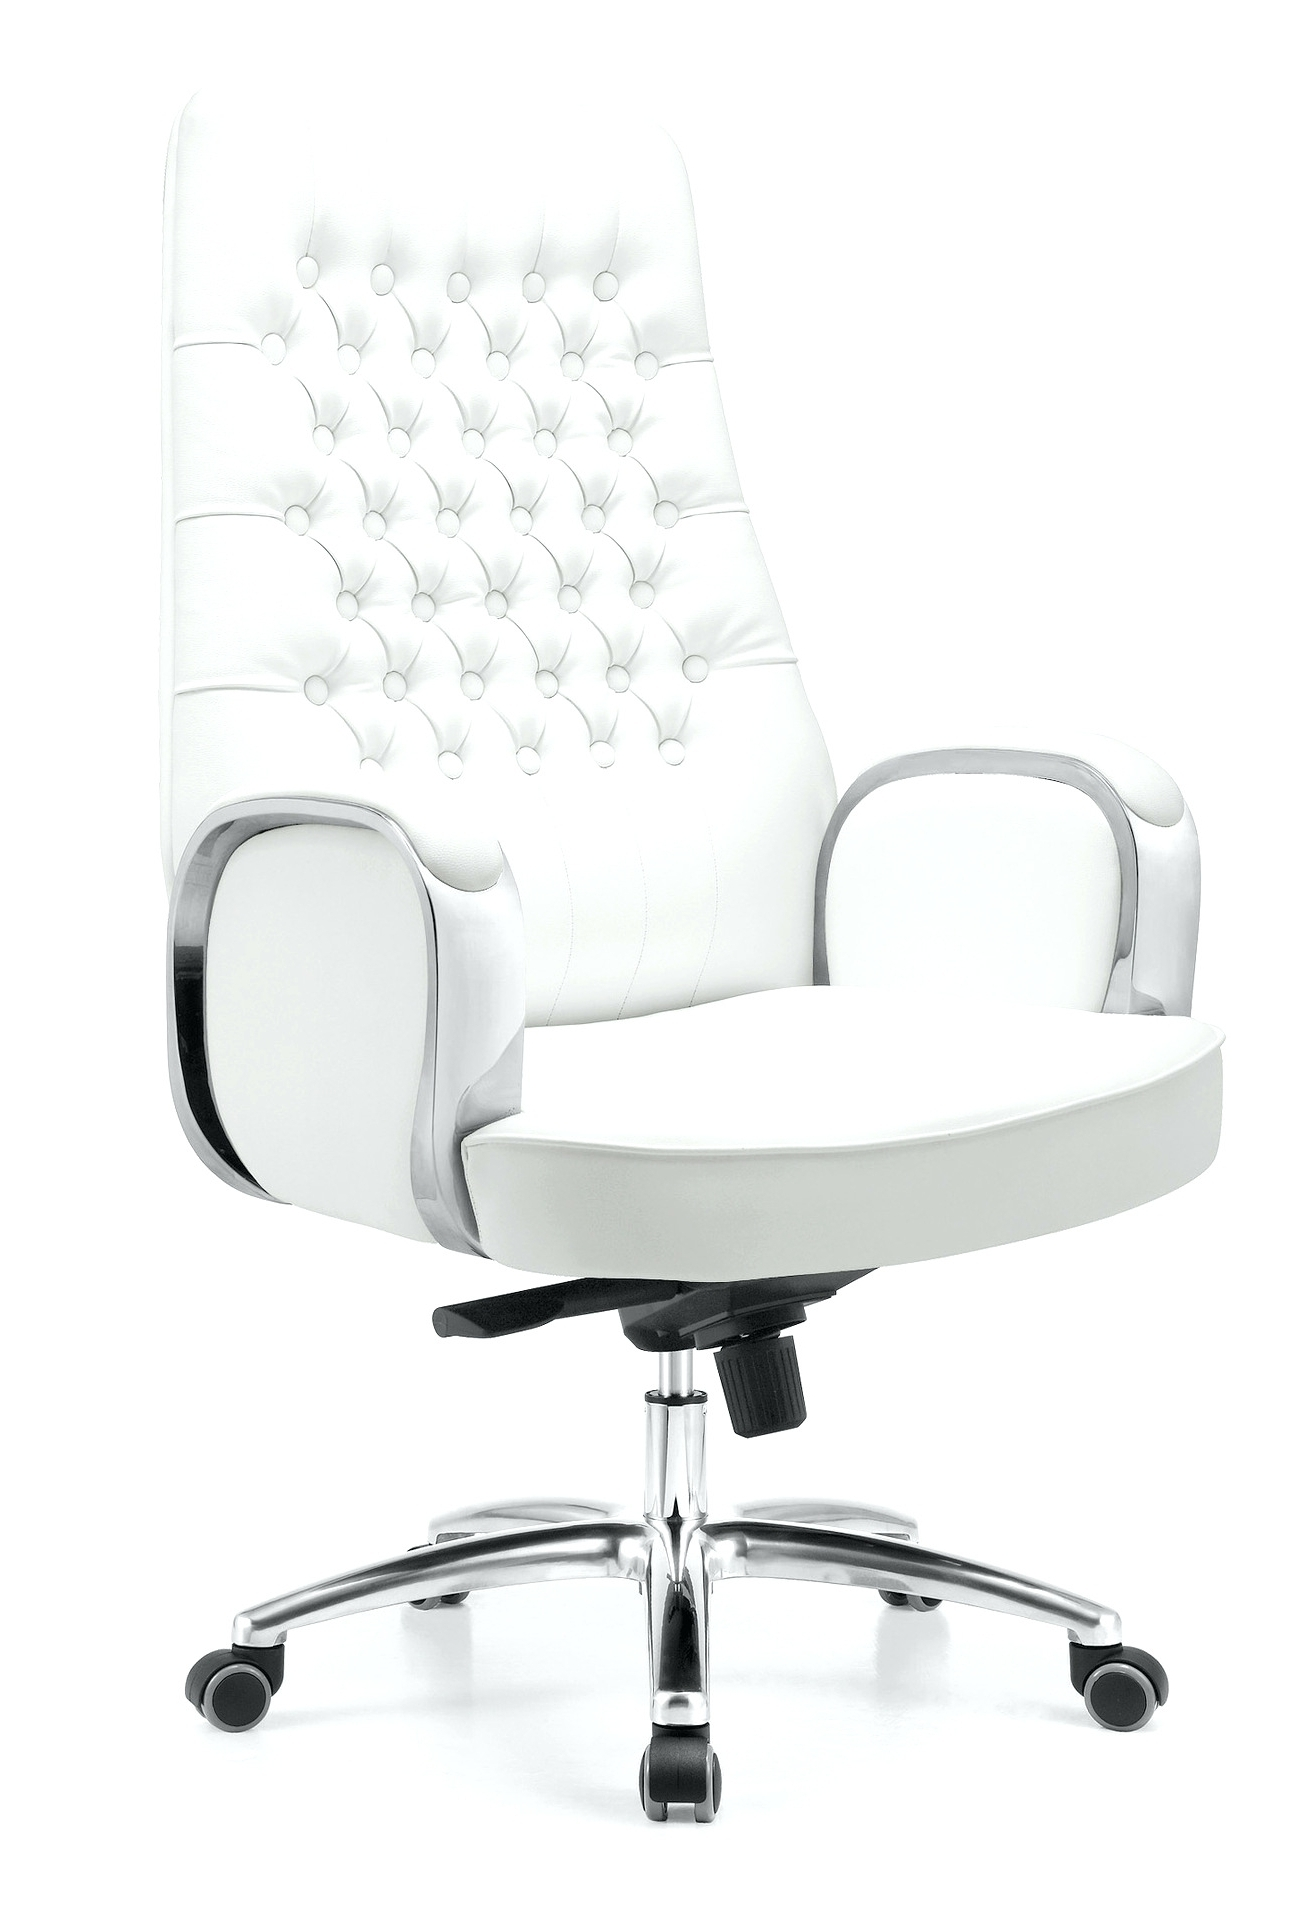 Chaise Lounge Computer Chairs Intended For Preferred Topform Computer Lounge Chair • Lounge Chairs Ideas (View 7 of 15)